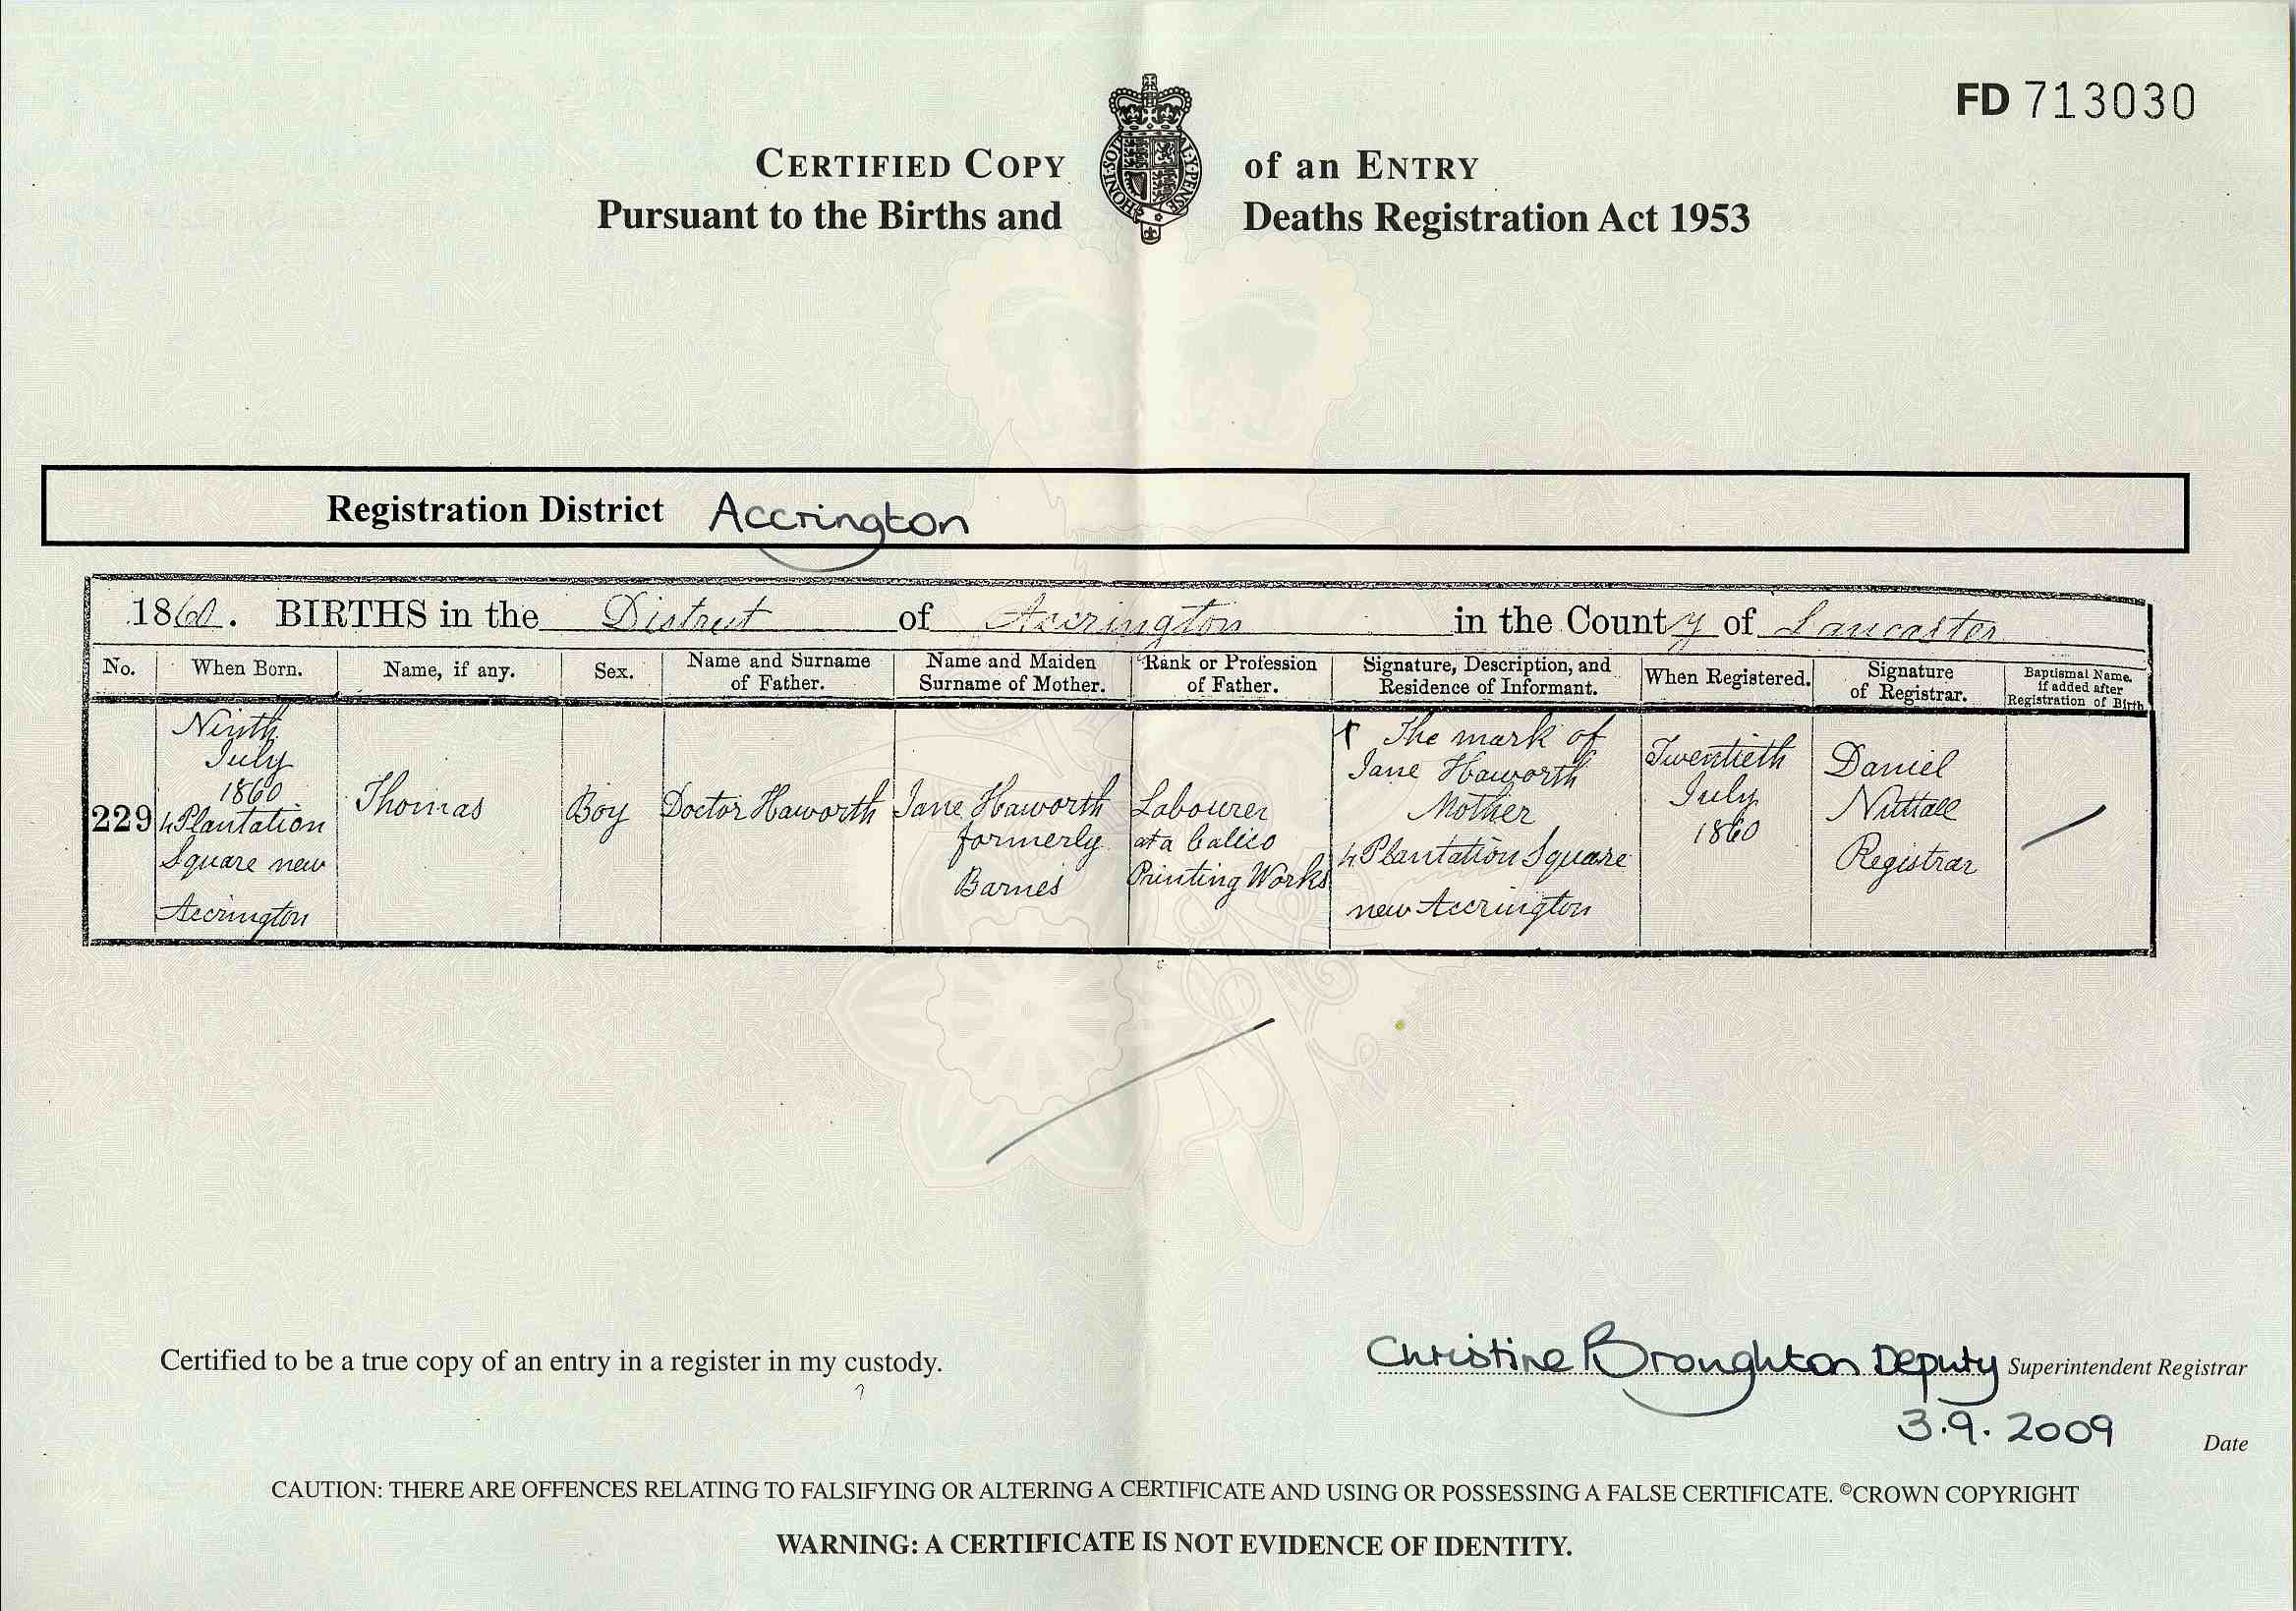 British birth certificate